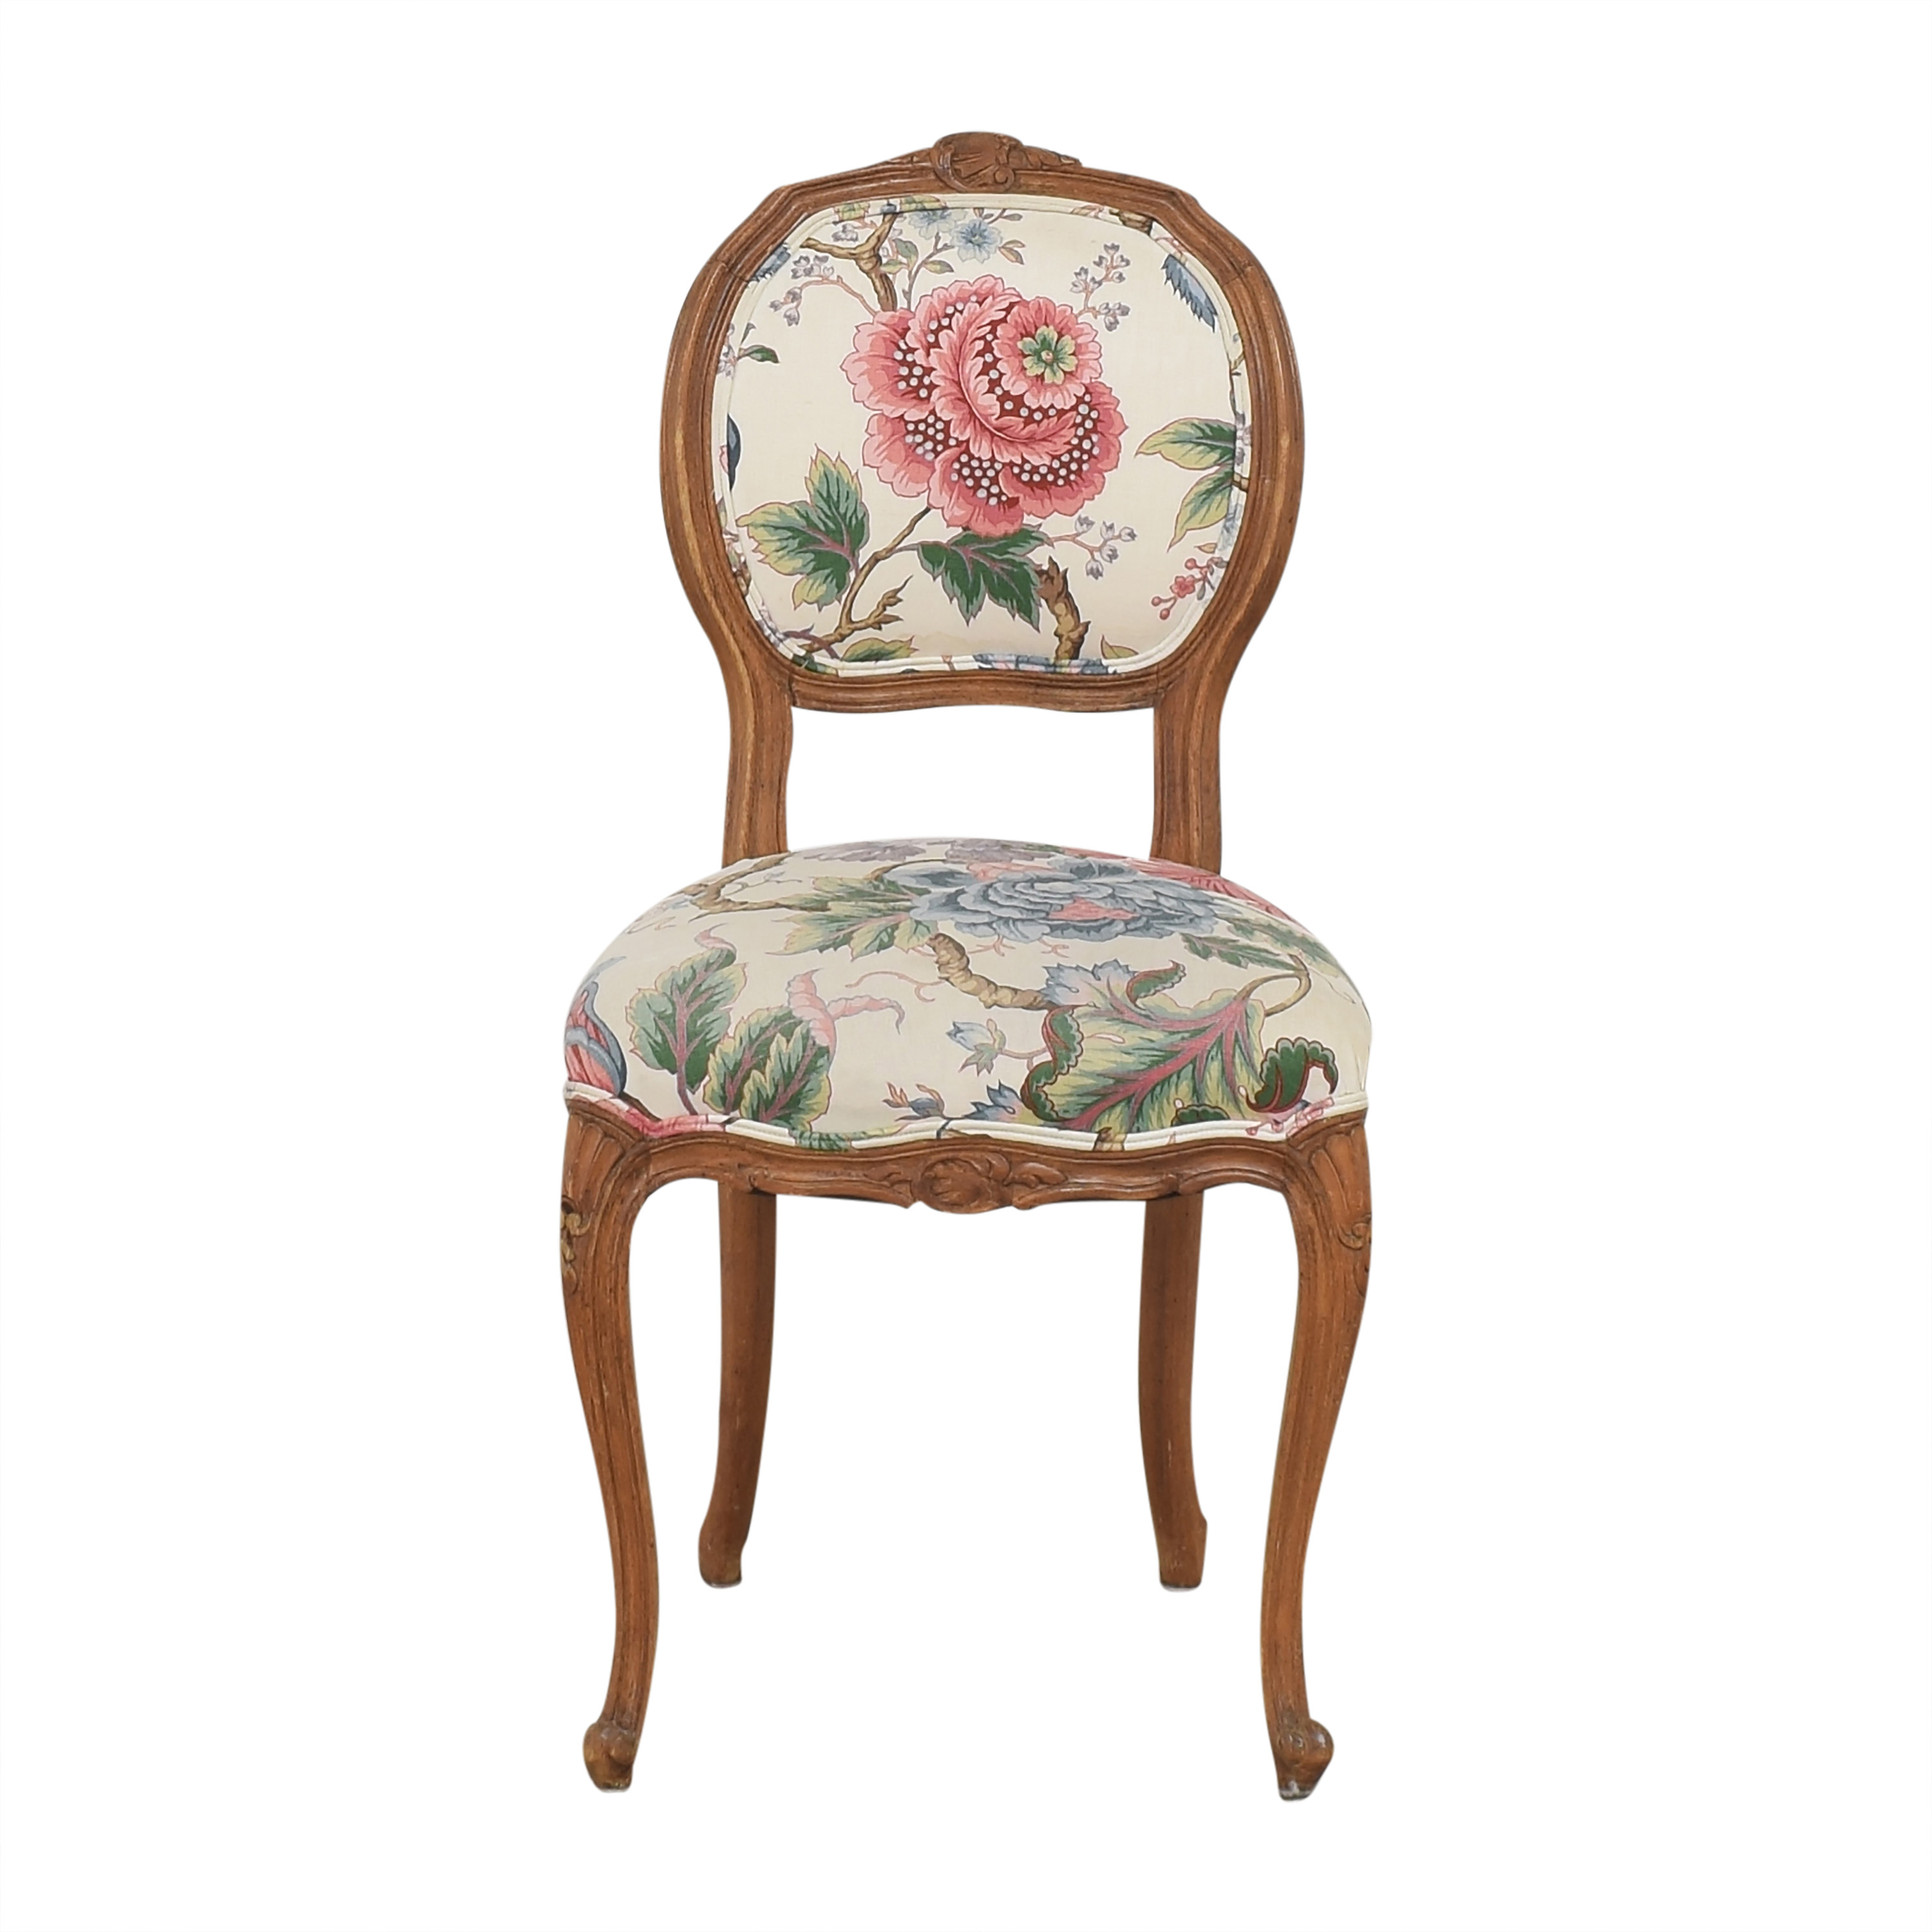 Floral Vintage-Style Upholstered Chair Chairs